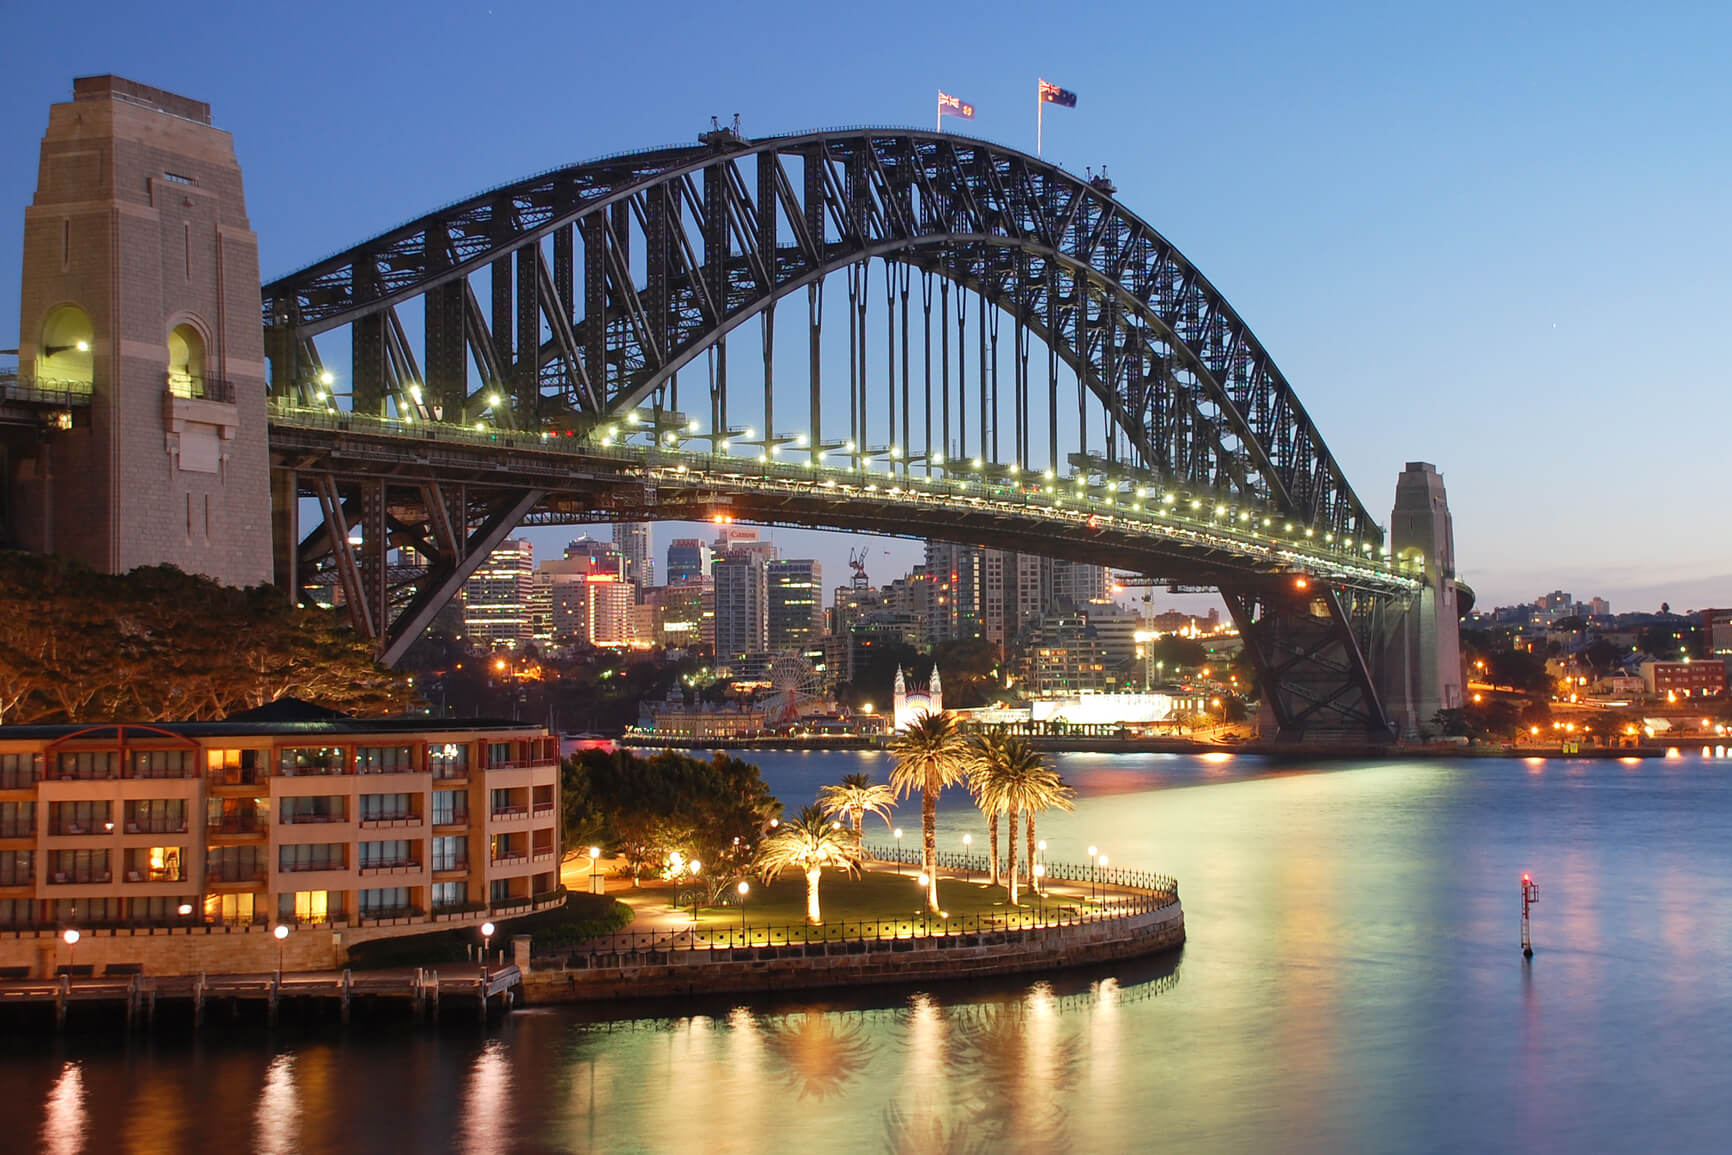 Shanghai, China to Sydney, Australia for only $397 USD roundtrip (Oct-Nov dates)